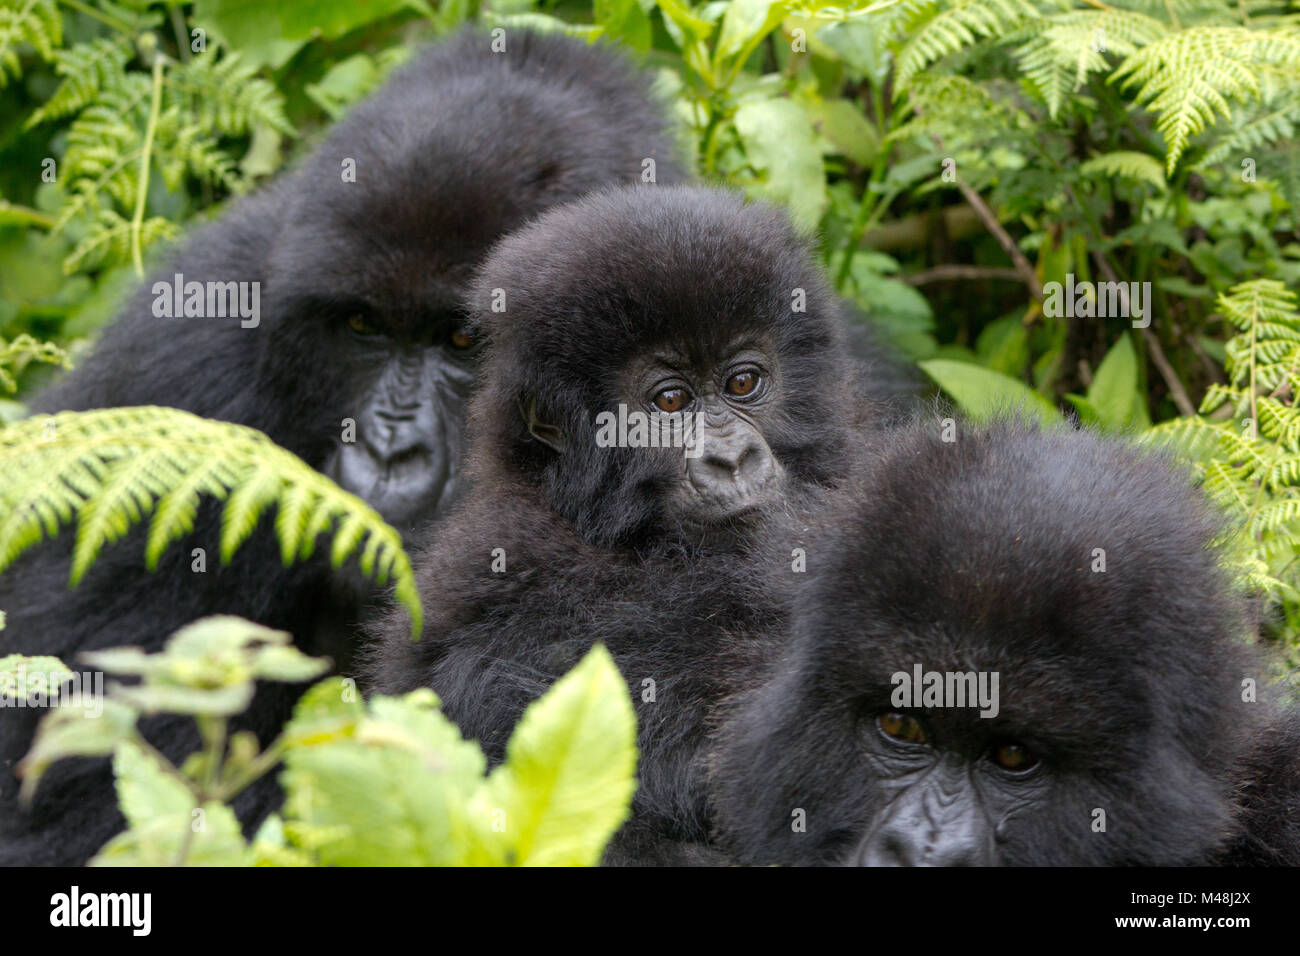 Three gorillas in the Virunga mountain region of Rwanda - Stock Image